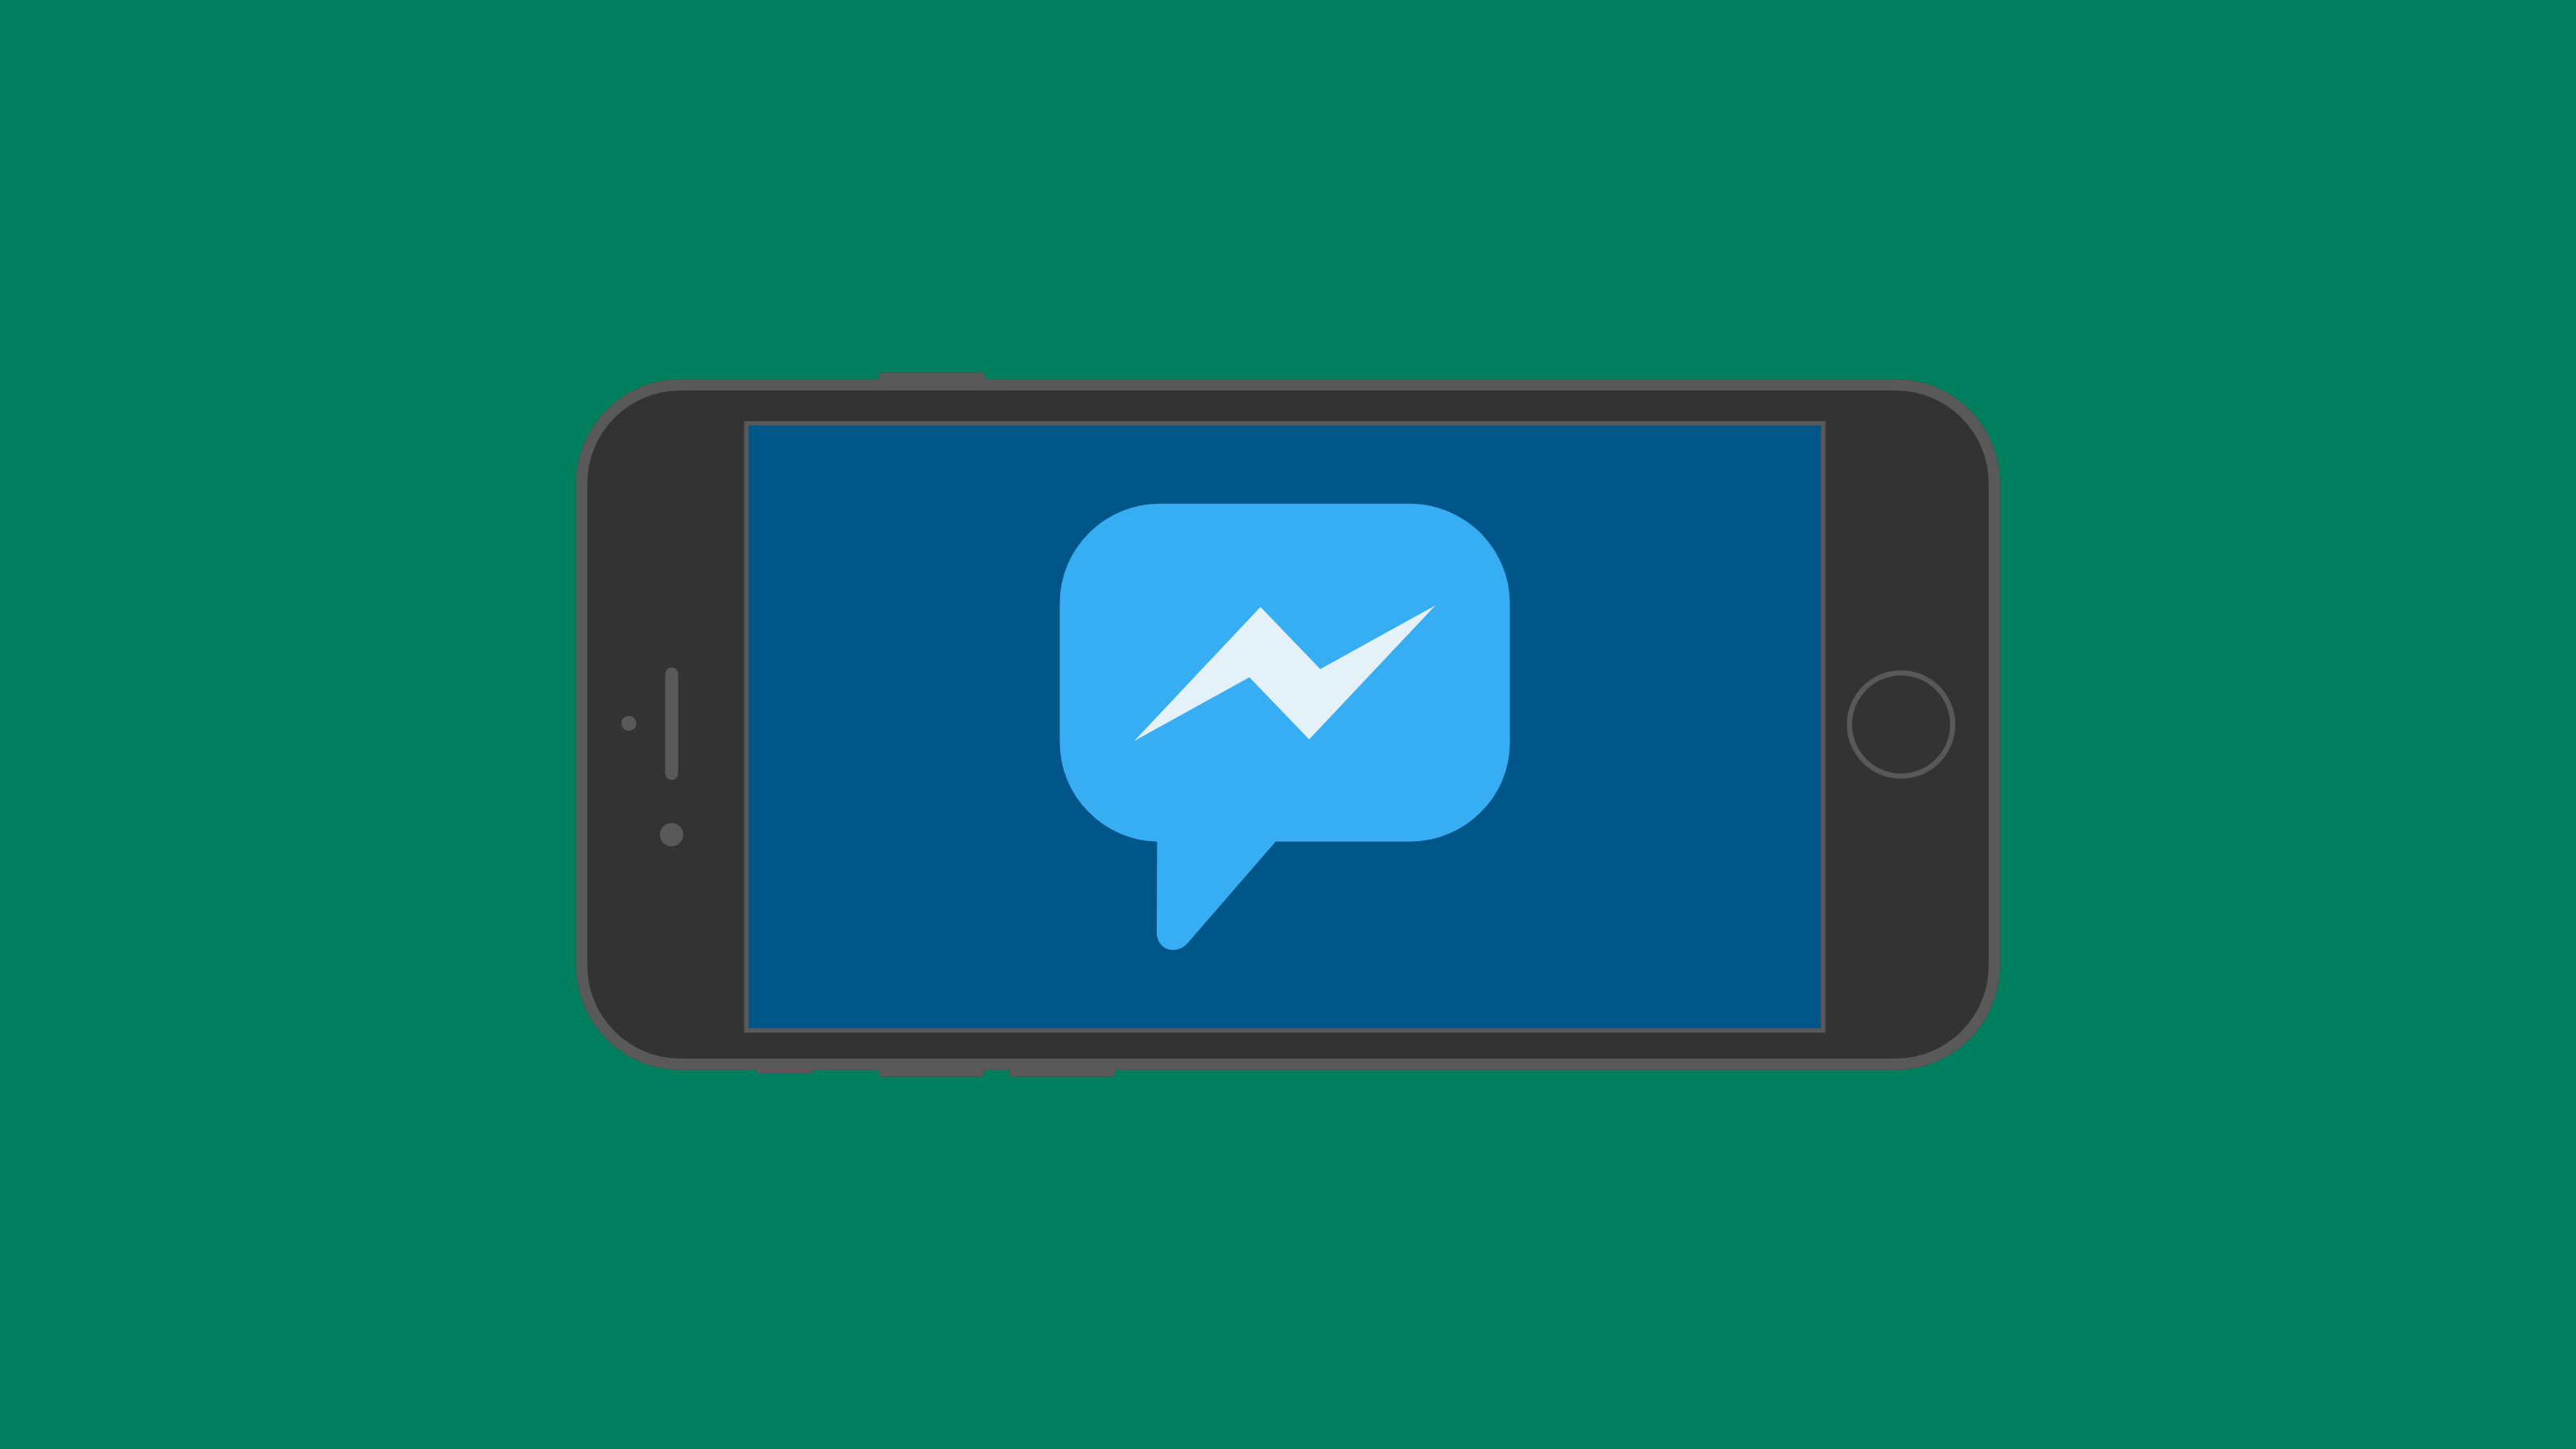 Messaging Apps & Brands Facebook Messenger